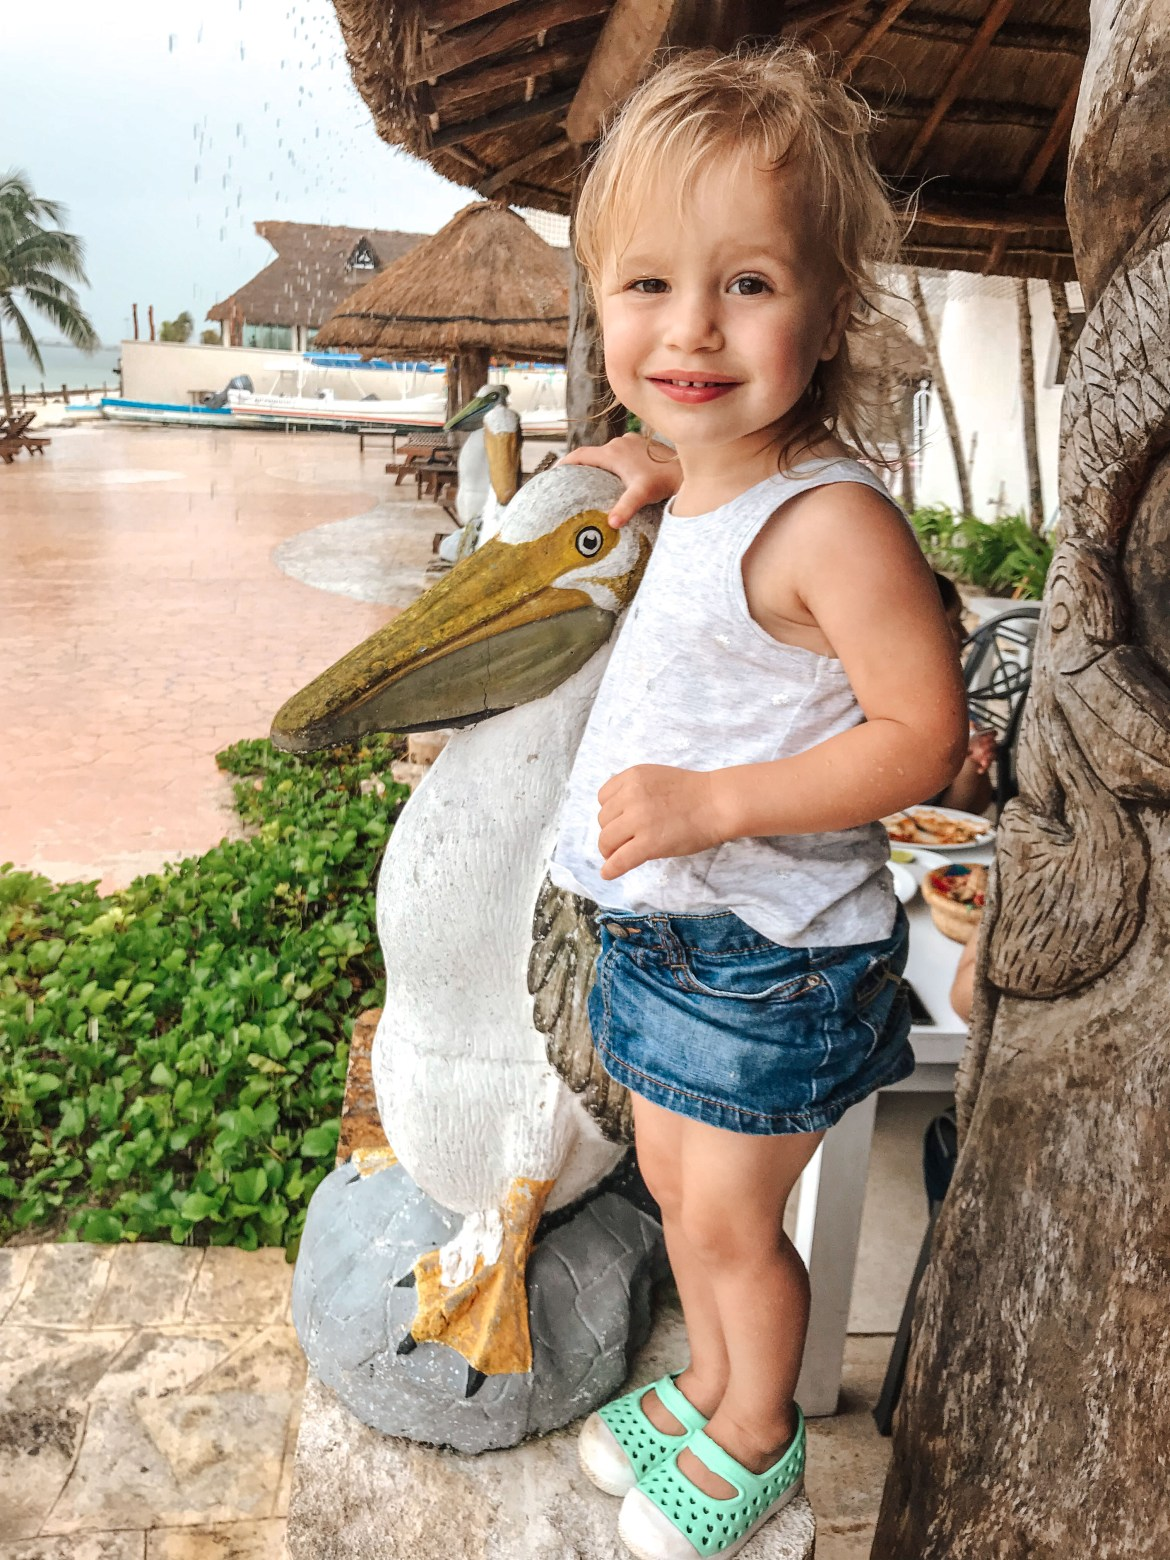 Things to do in Puerto Morelos Mexico. A young girl stands next to a statue of a pelican under a thatched roof as rain pours onto an outdoor cement patio in Mexico's Puerto Morelos, a town South of Cancún along the Riviera Maya.